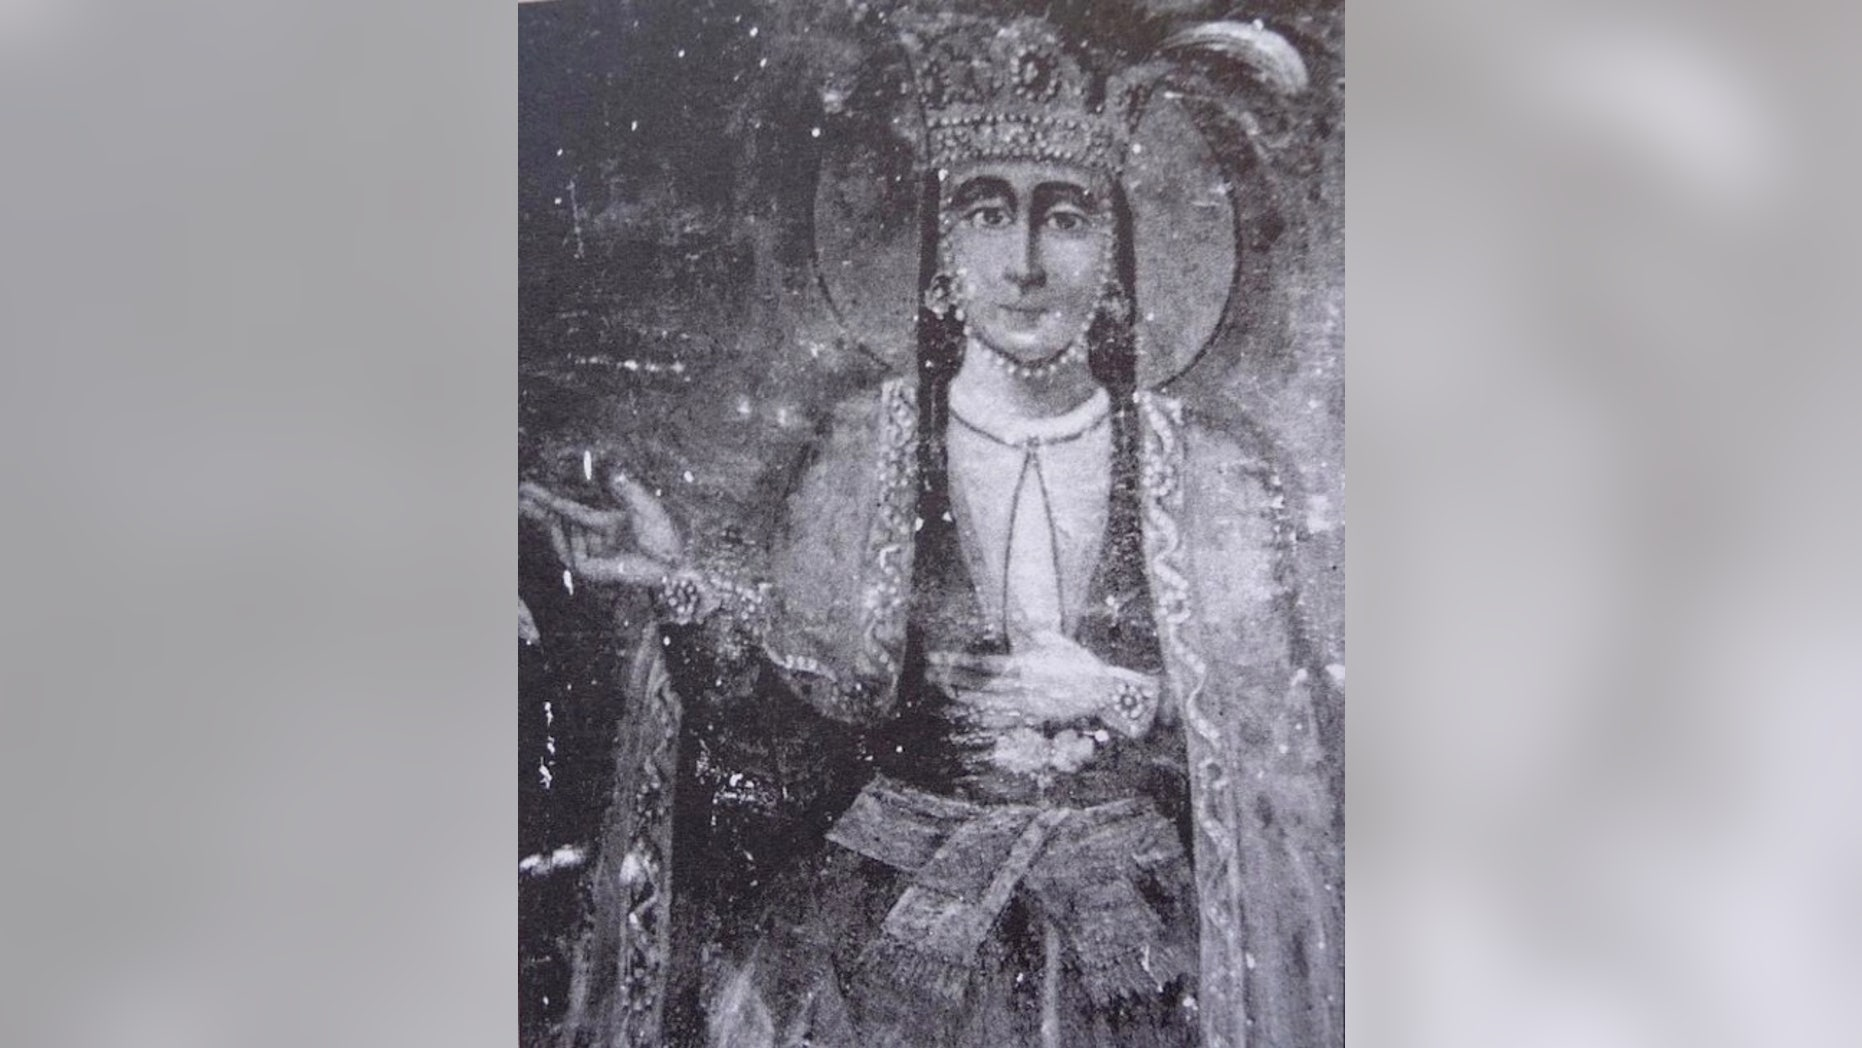 New DNA analysis of a bone fragment found in an Indian Church suggest that the relic belongs to Queen Ketevan, who was martyred in the 1600s.